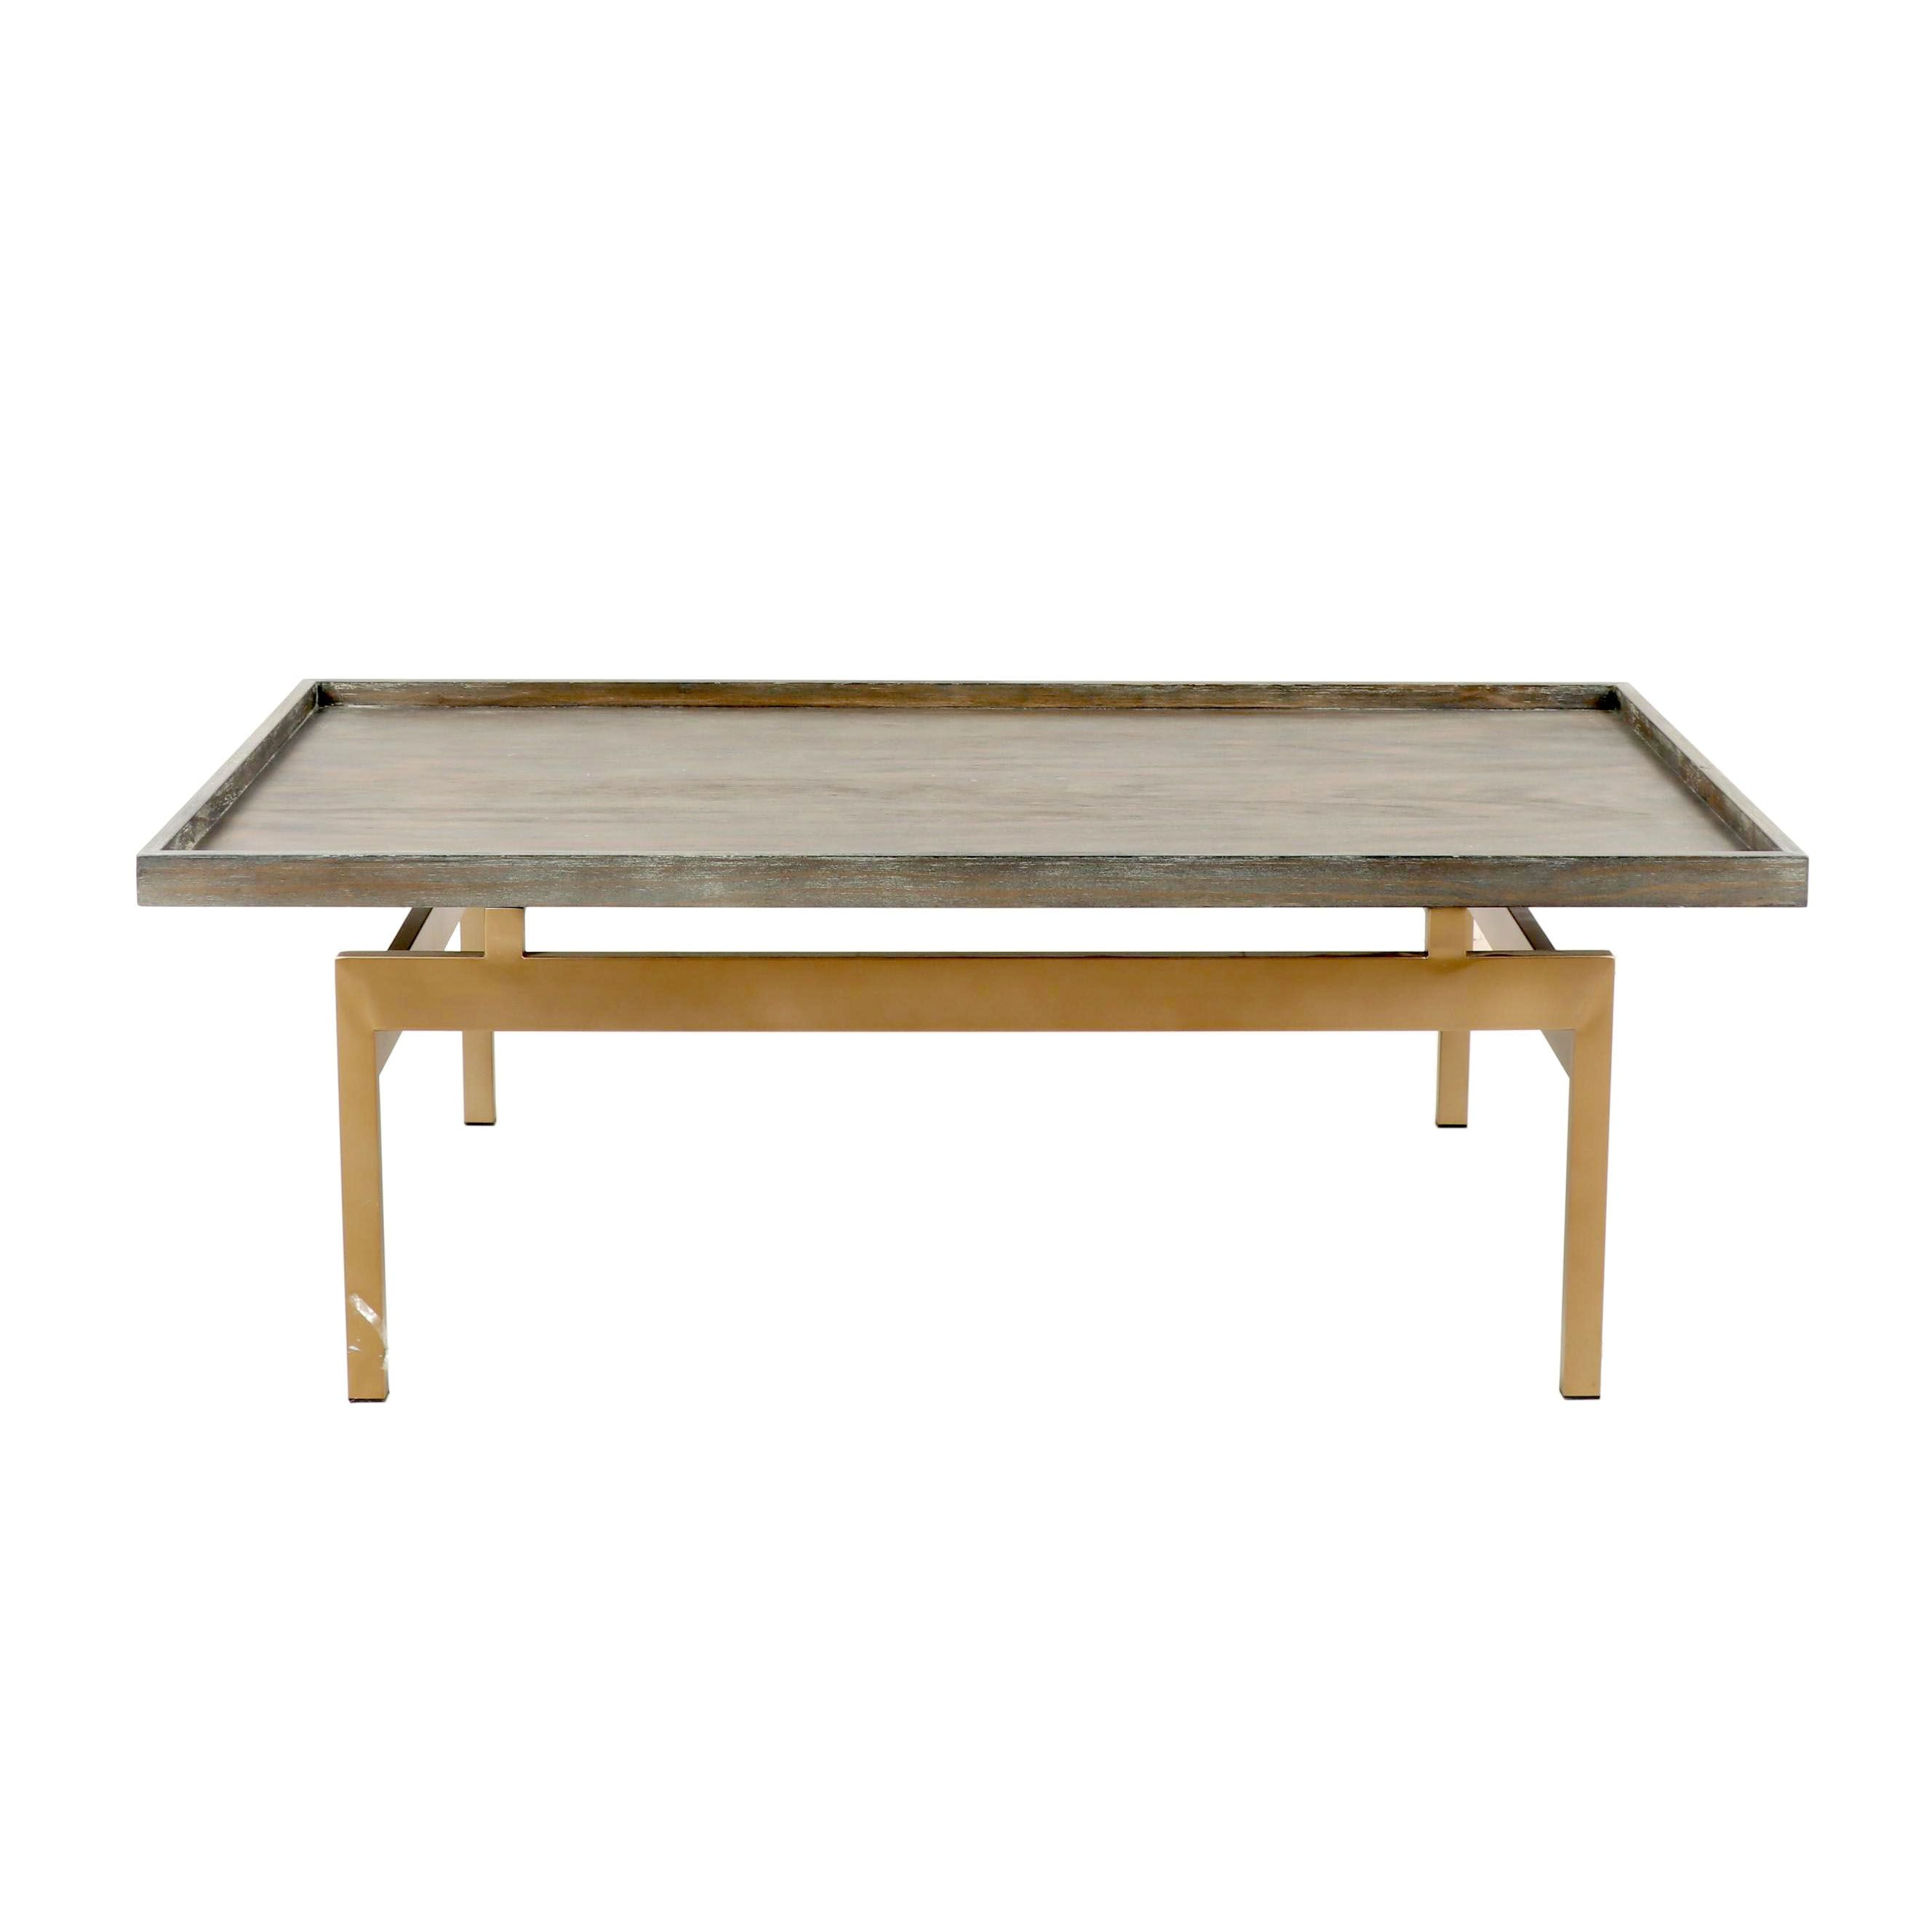 Metal and Wood Coffee Table